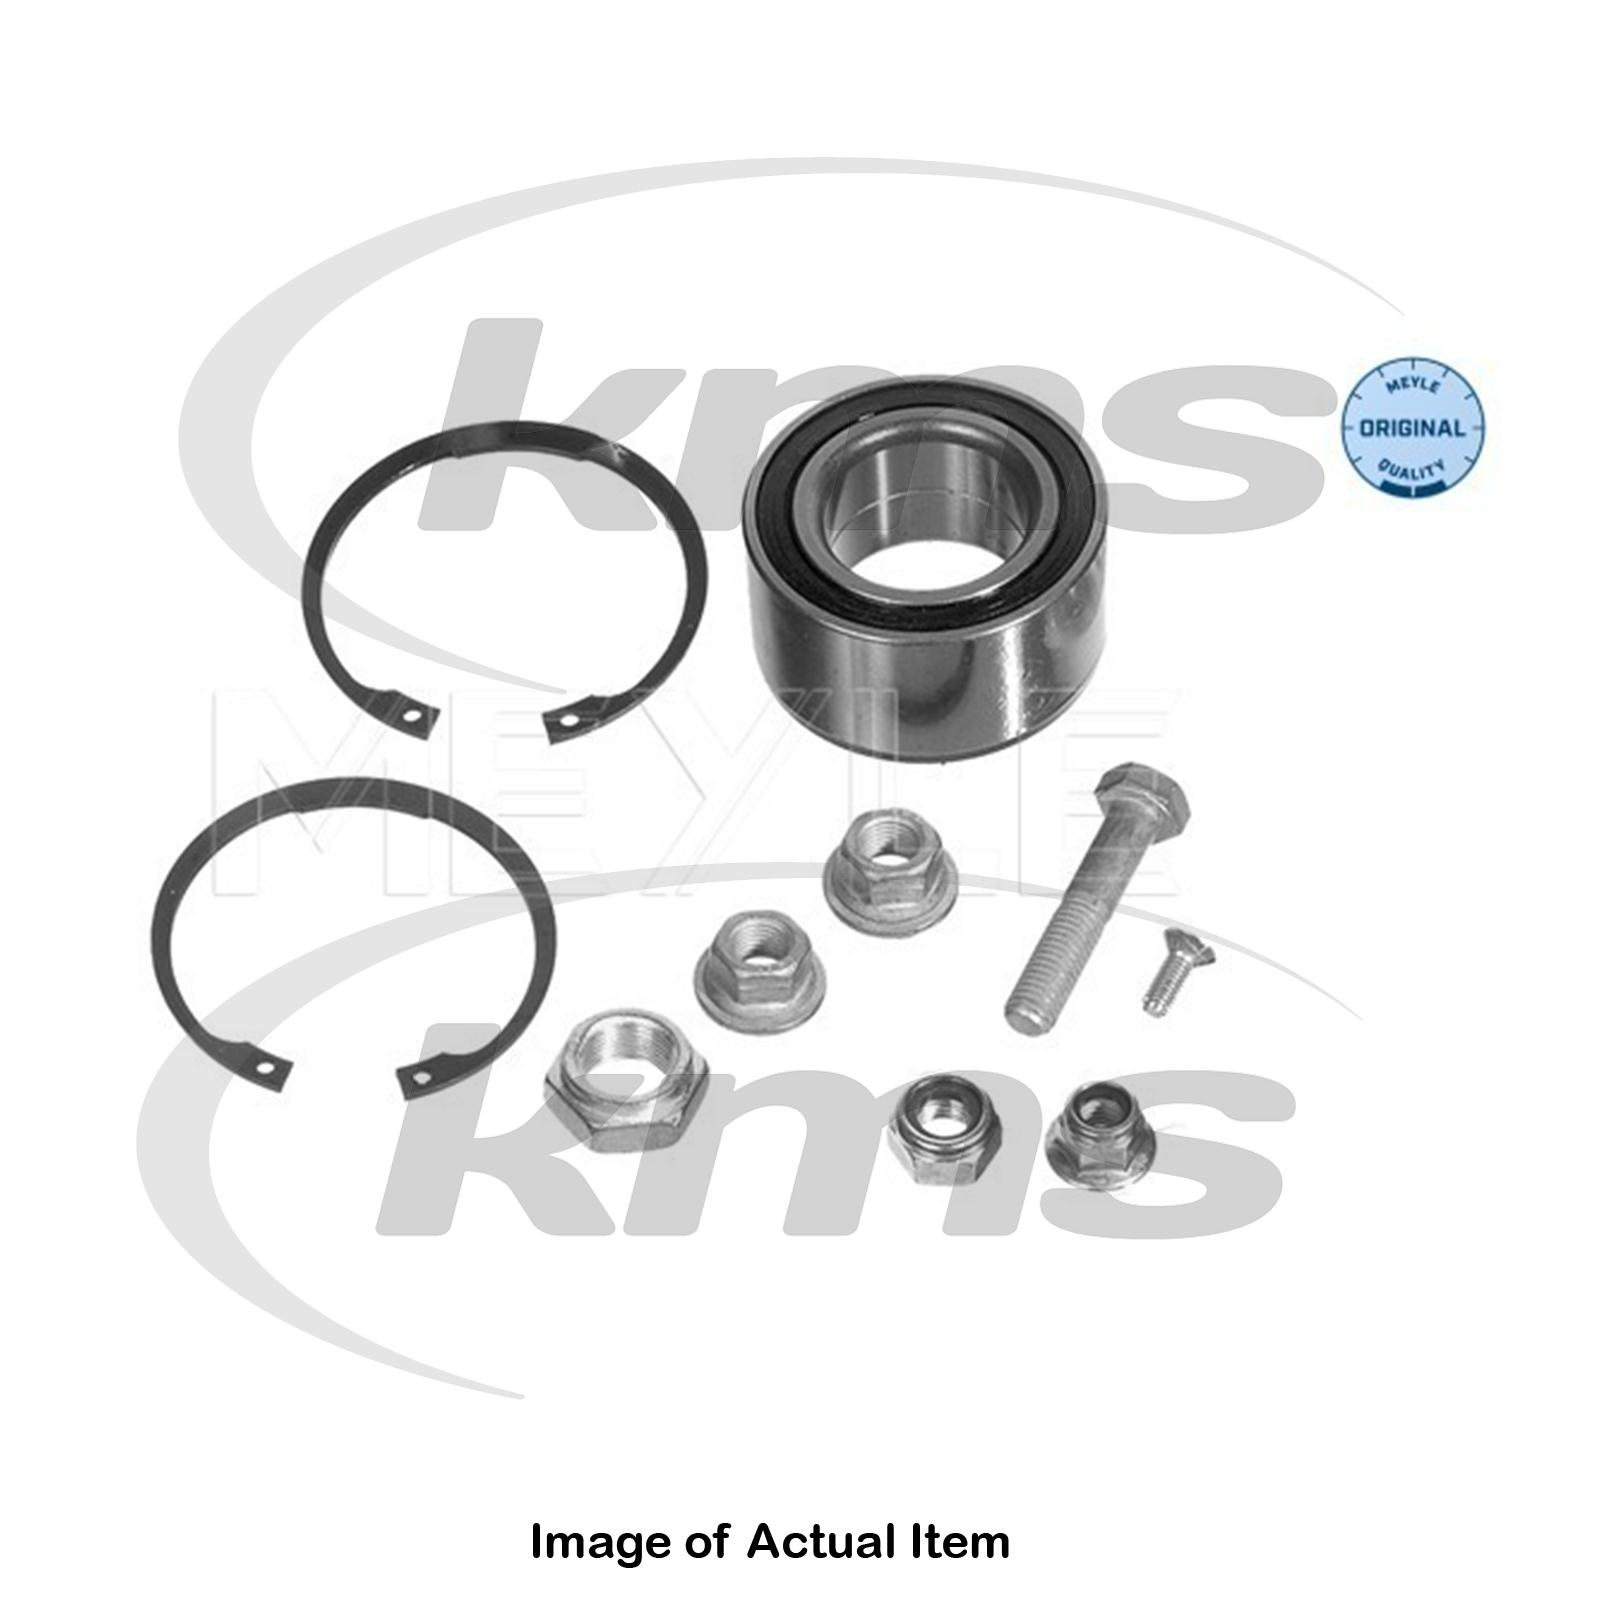 07955734458 Details about New Genuine MEYLE Wheel Bearing Kit 100 498 0035 Top German  Quality